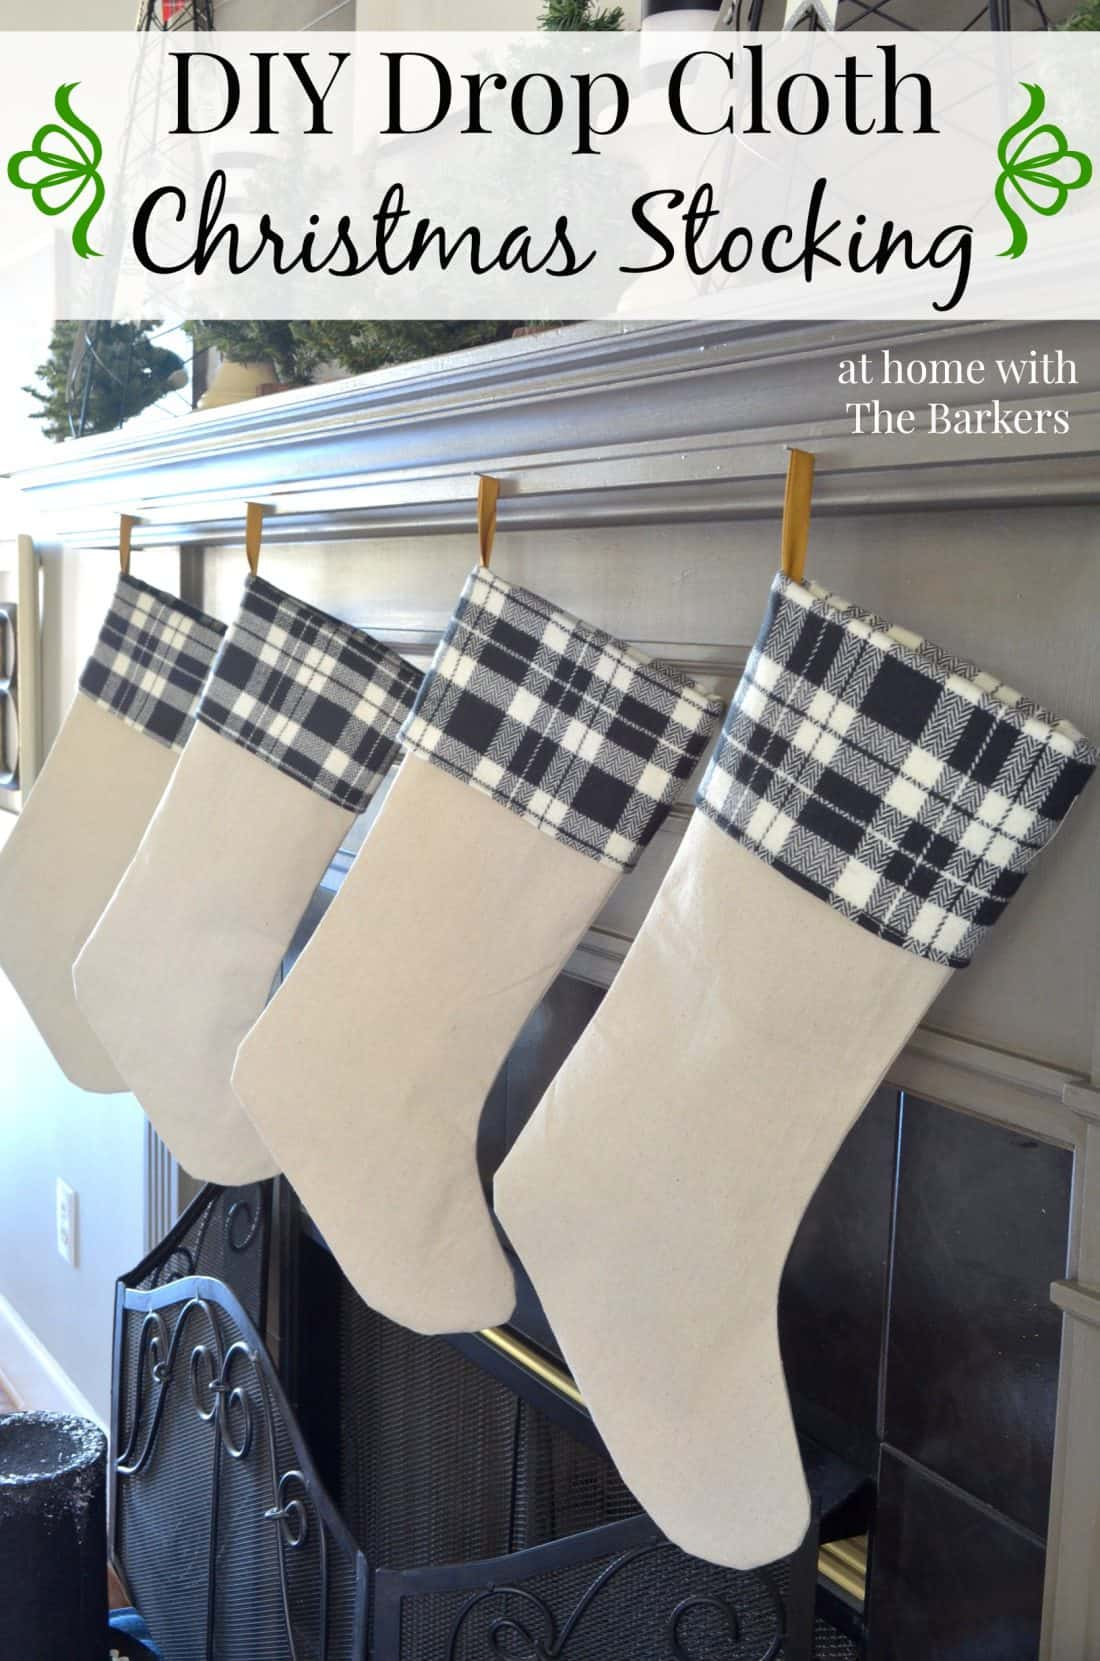 Diy Drop Cloth Christmas Stocking At Home With The Barkers